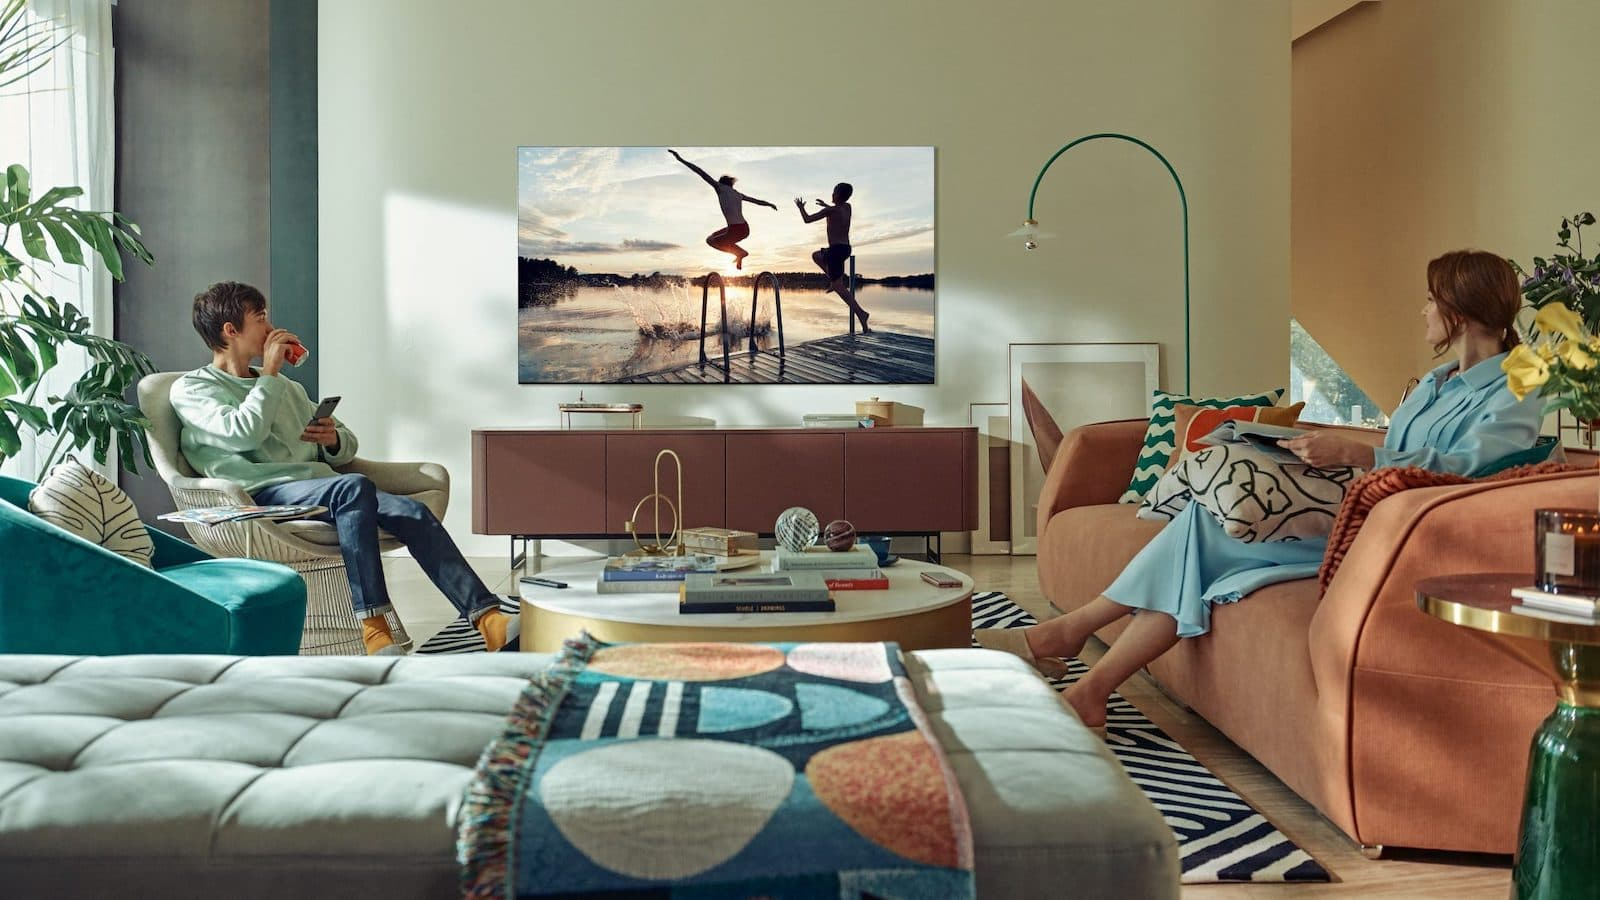 The Best Tv To Buy In 2021 Affordable Smart For Gamers And More Gadget Flow